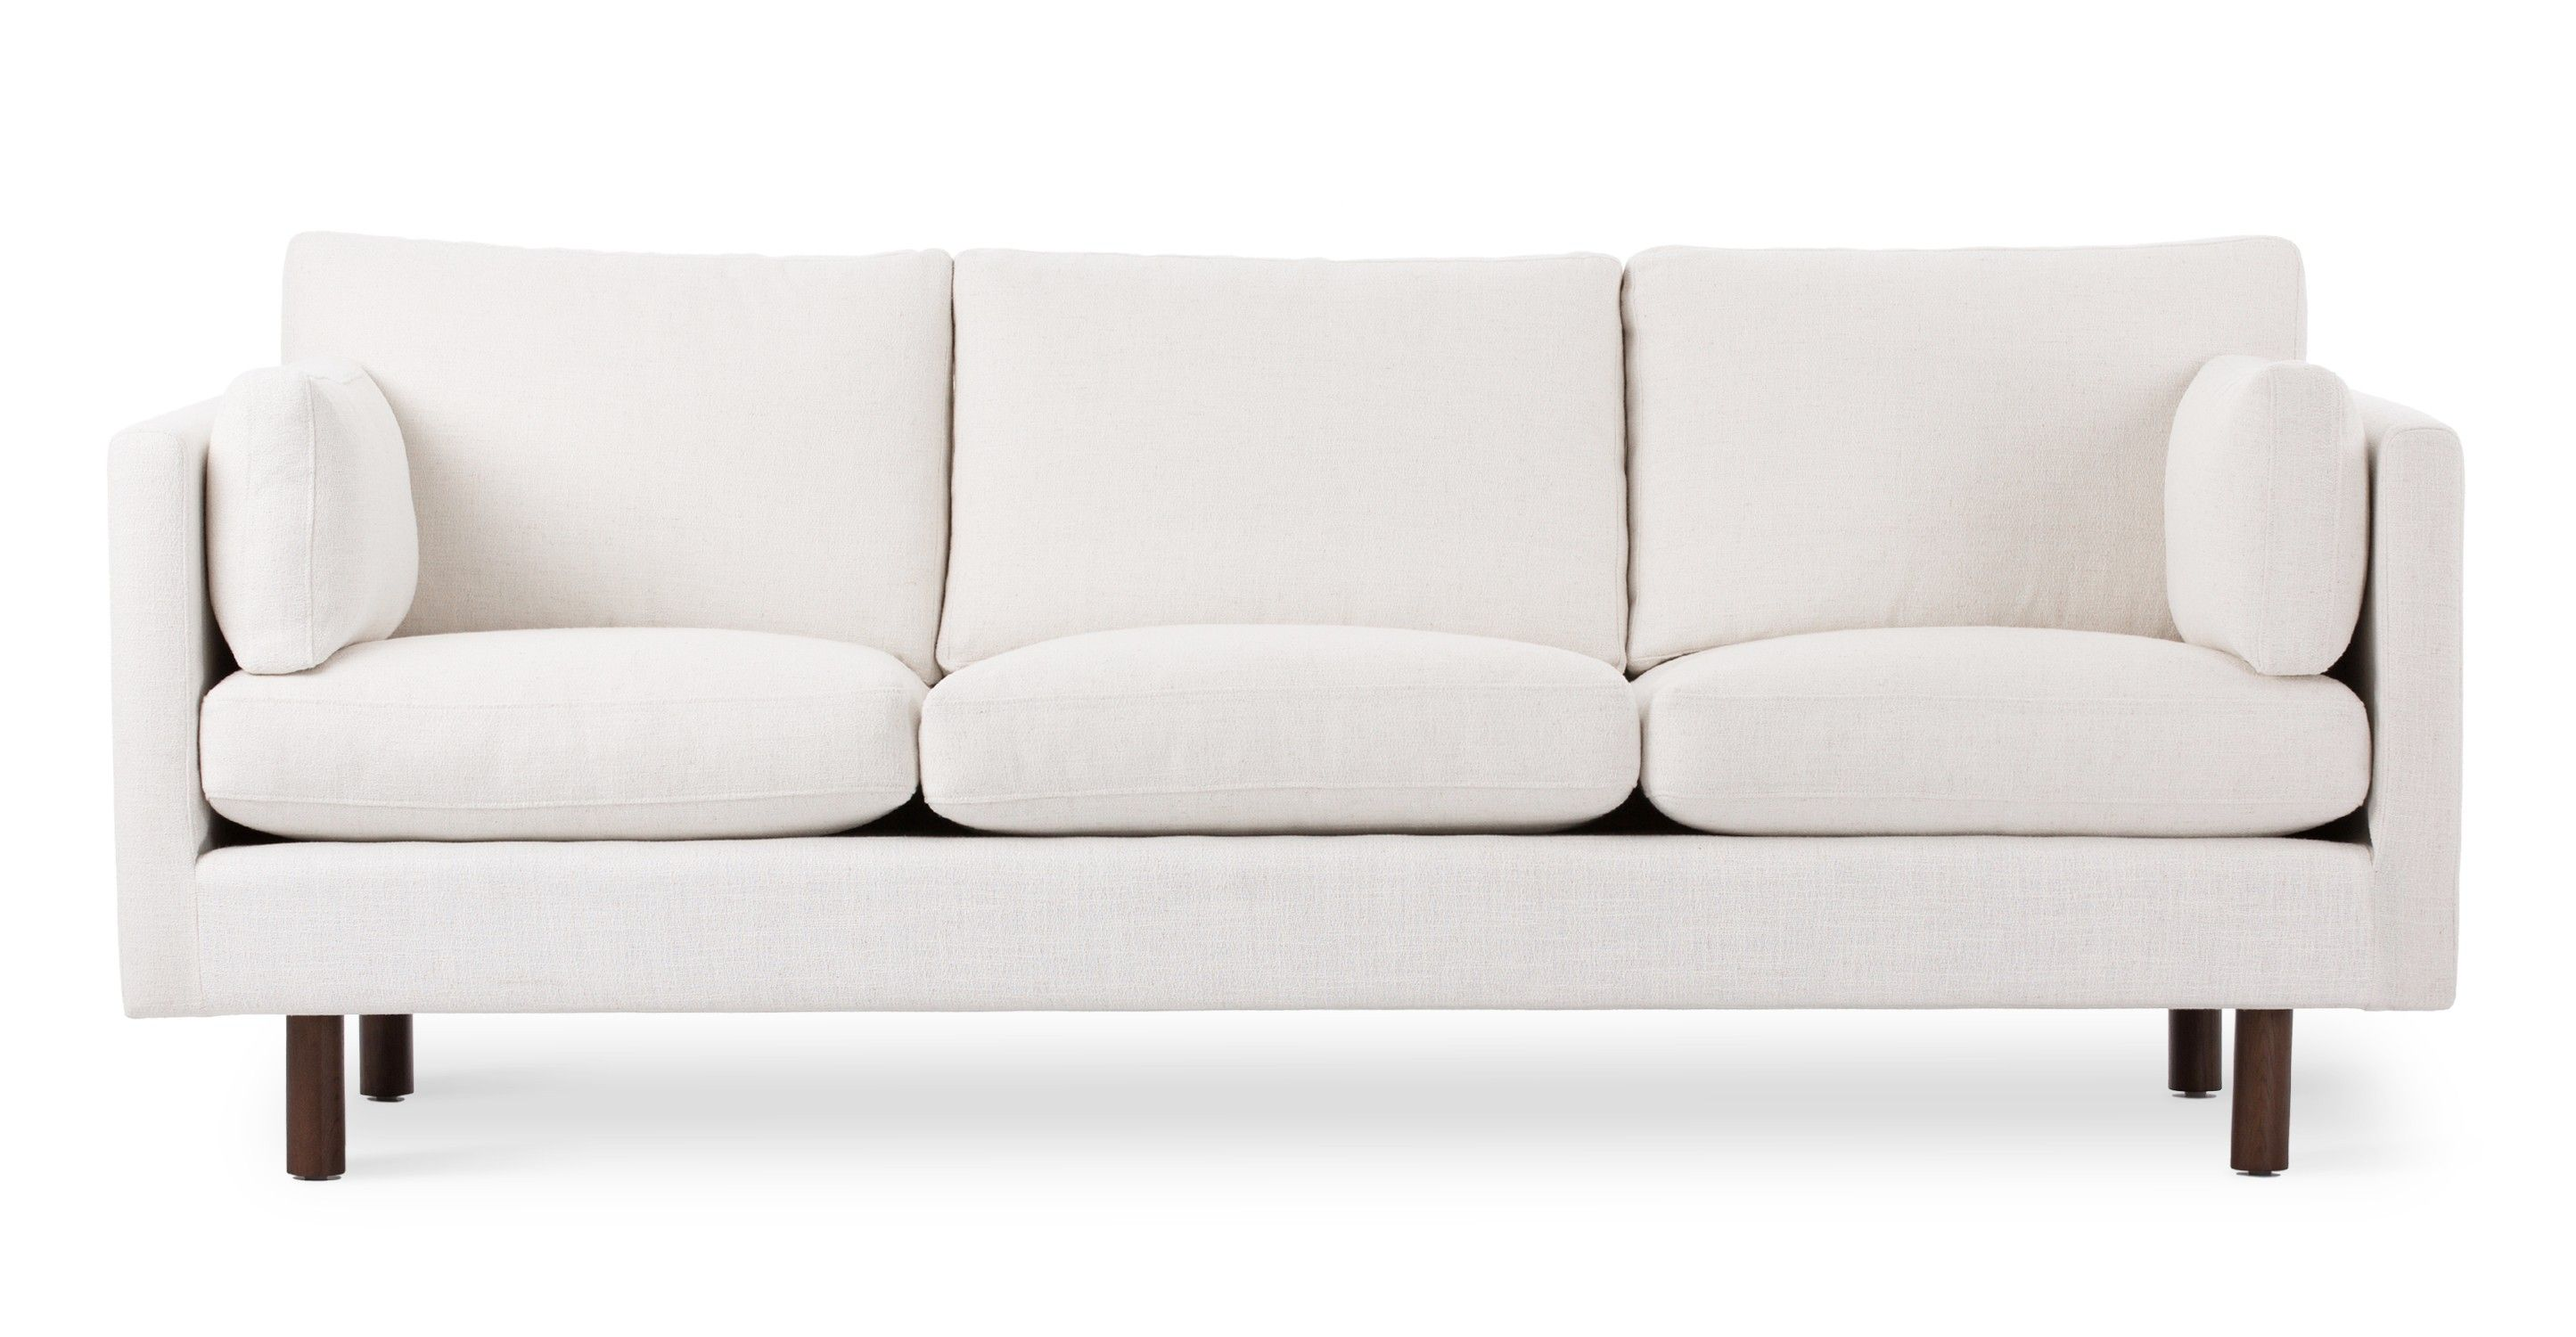 Flamboyant White Sofa For An Exquisite Living Darbylanefurniture Com In 2020 Modern White Couch Modern White Sofa White Sofas